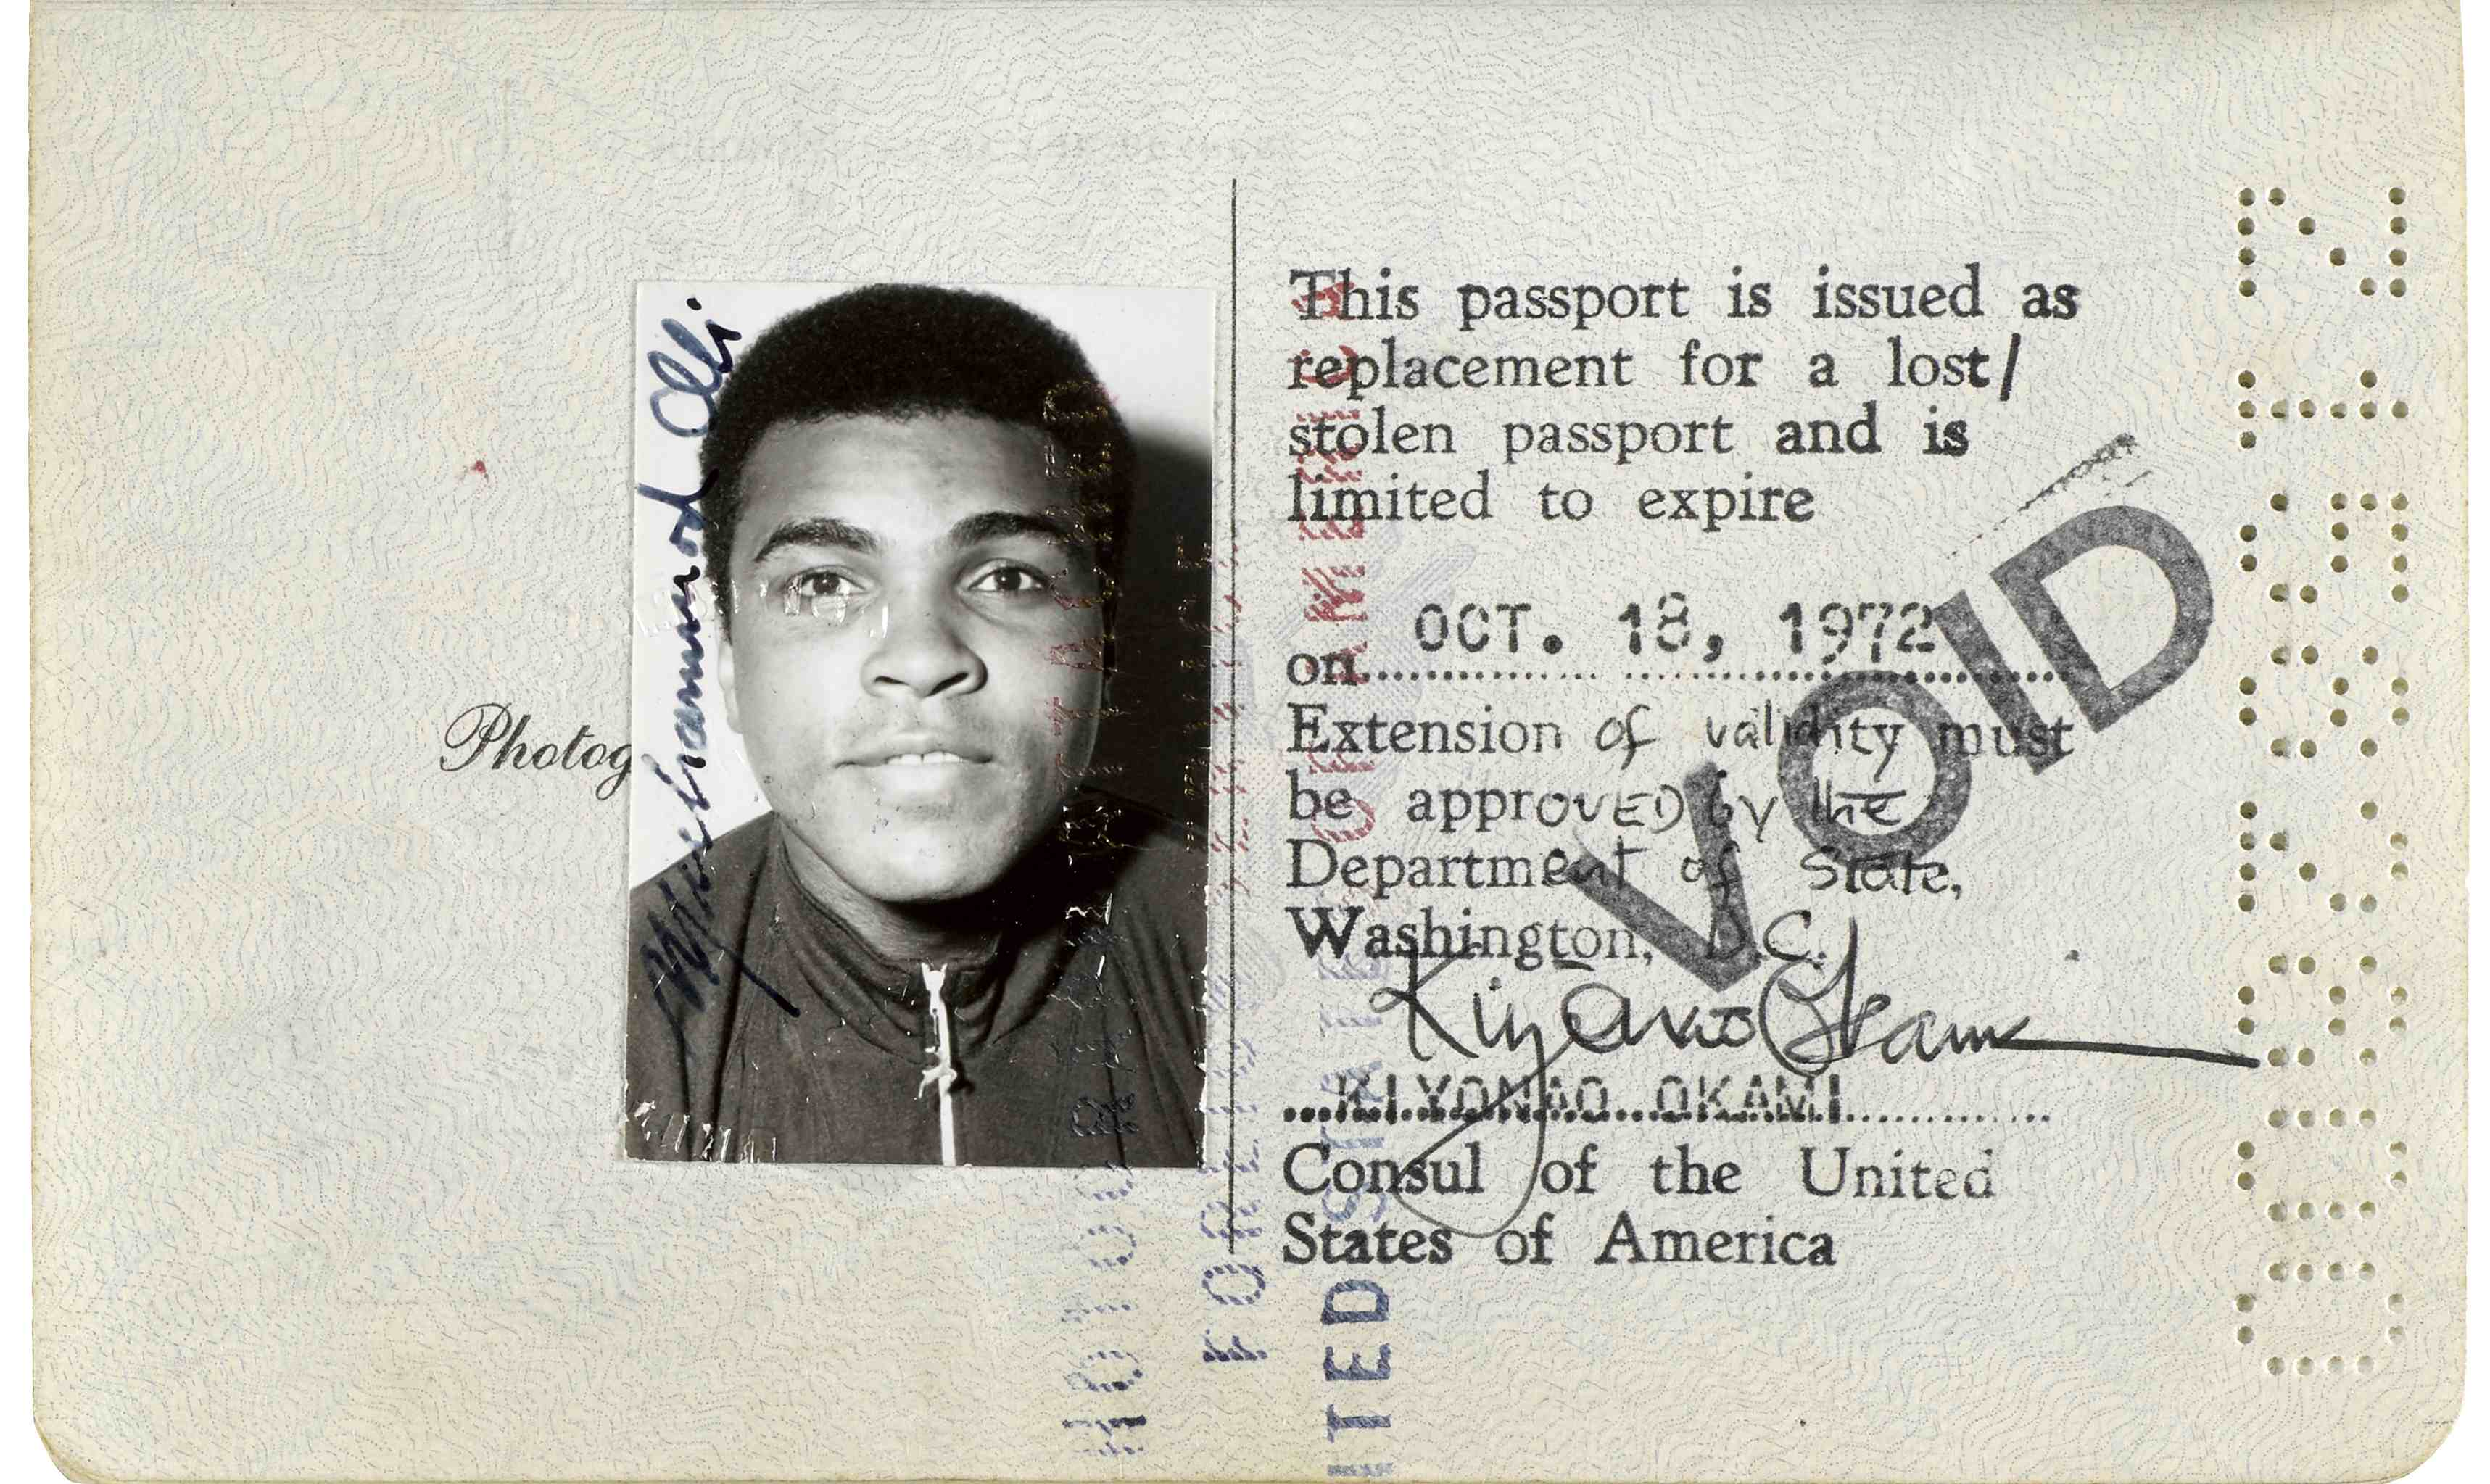 Muhammad Ali Passport heads to auction (via FB&C and Biblio.com)